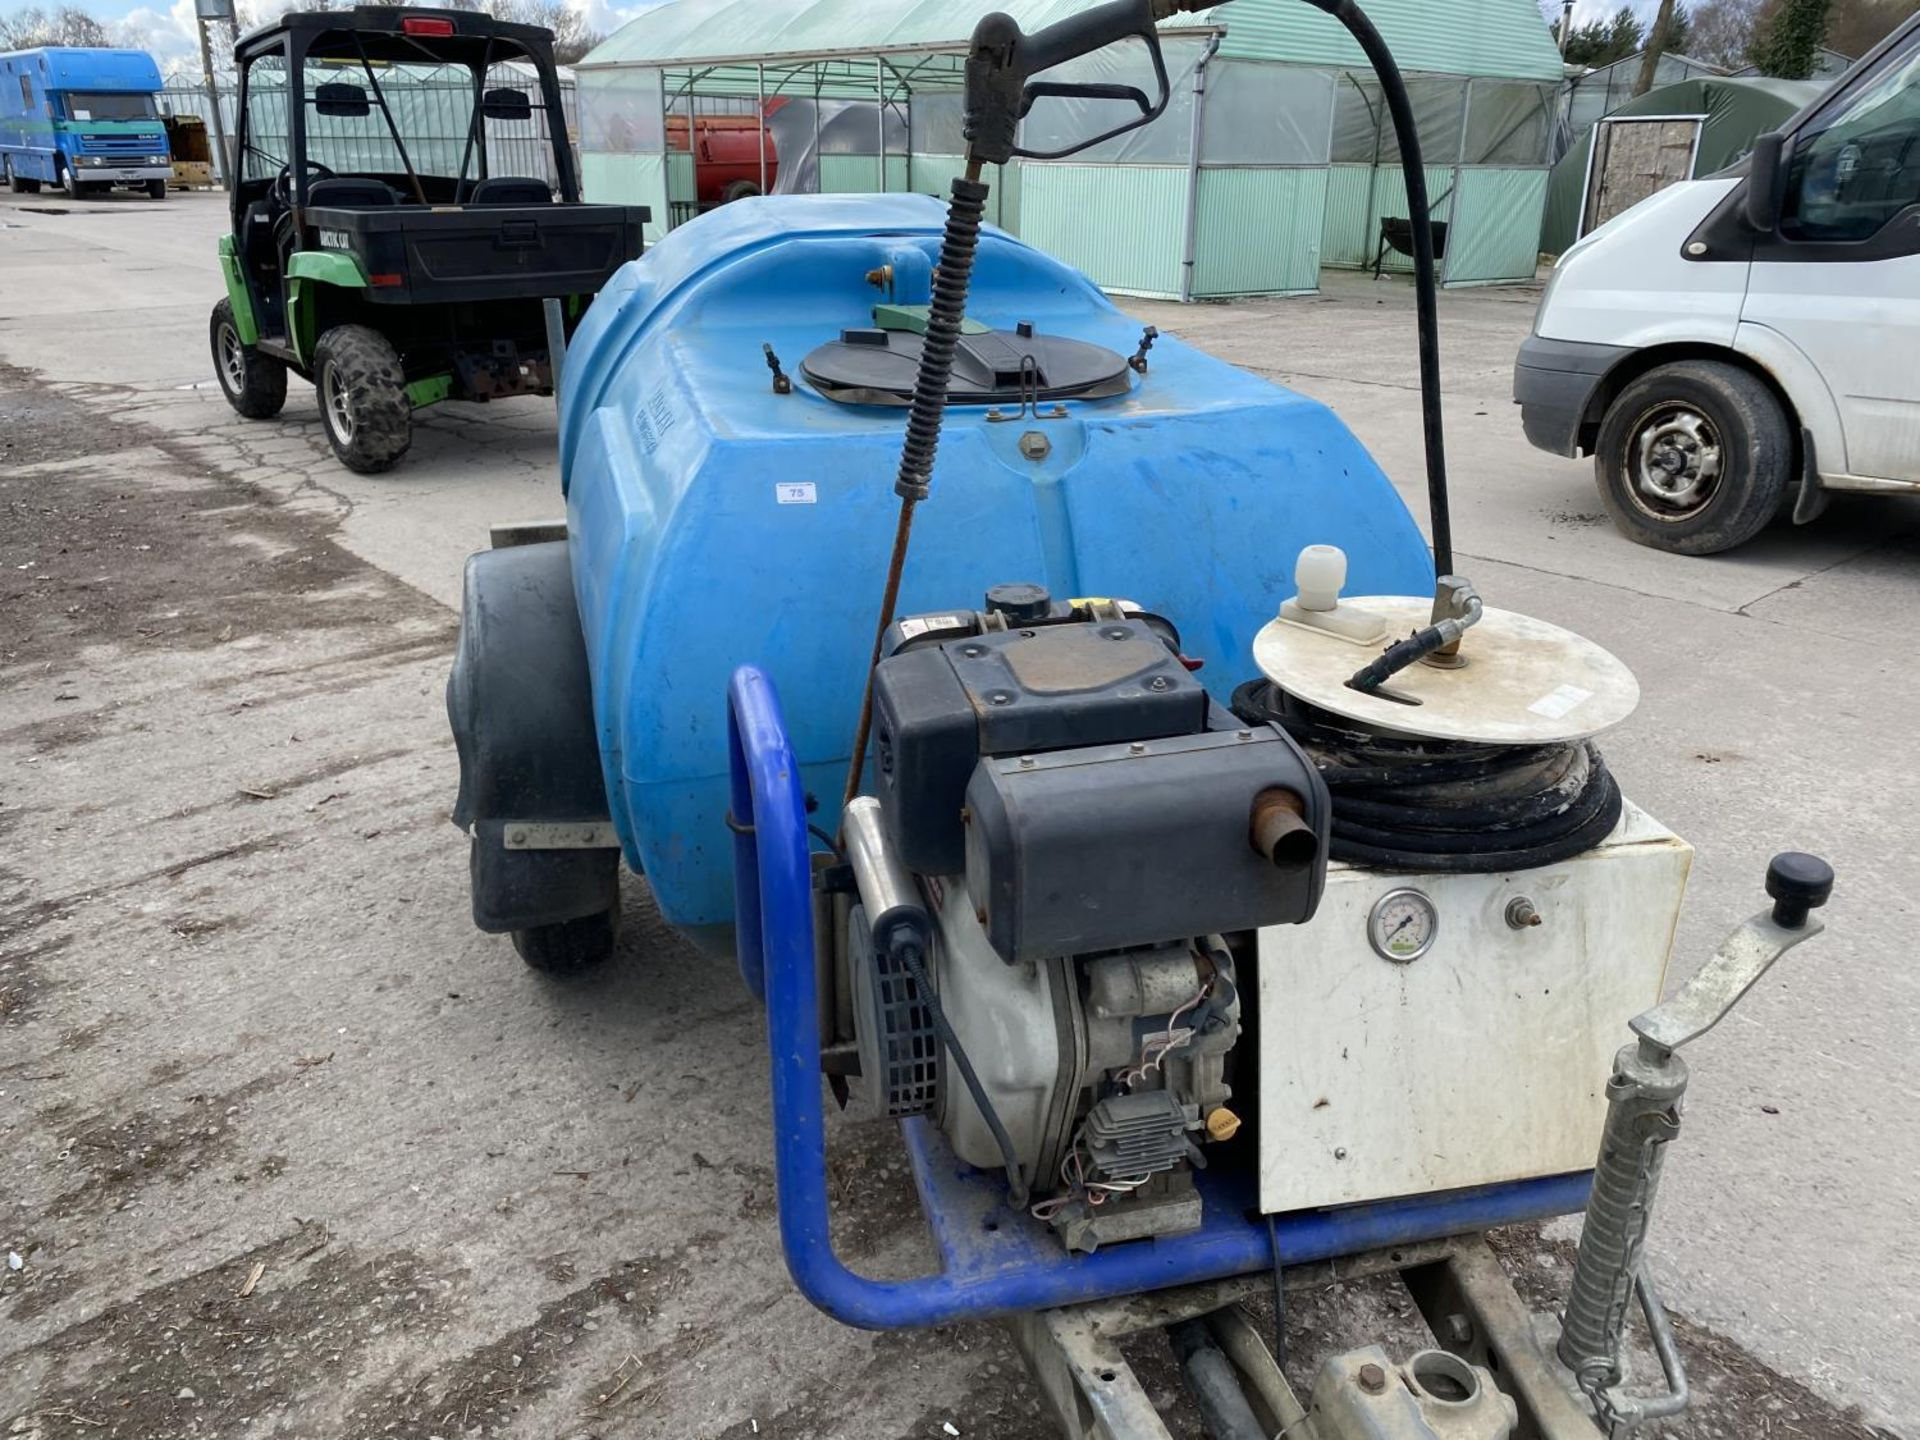 A MOBILE JET WASHER WITH DIESEL ENGINE BELIEVED WORKING NO WARRANTY - NO VAT - Image 4 of 5